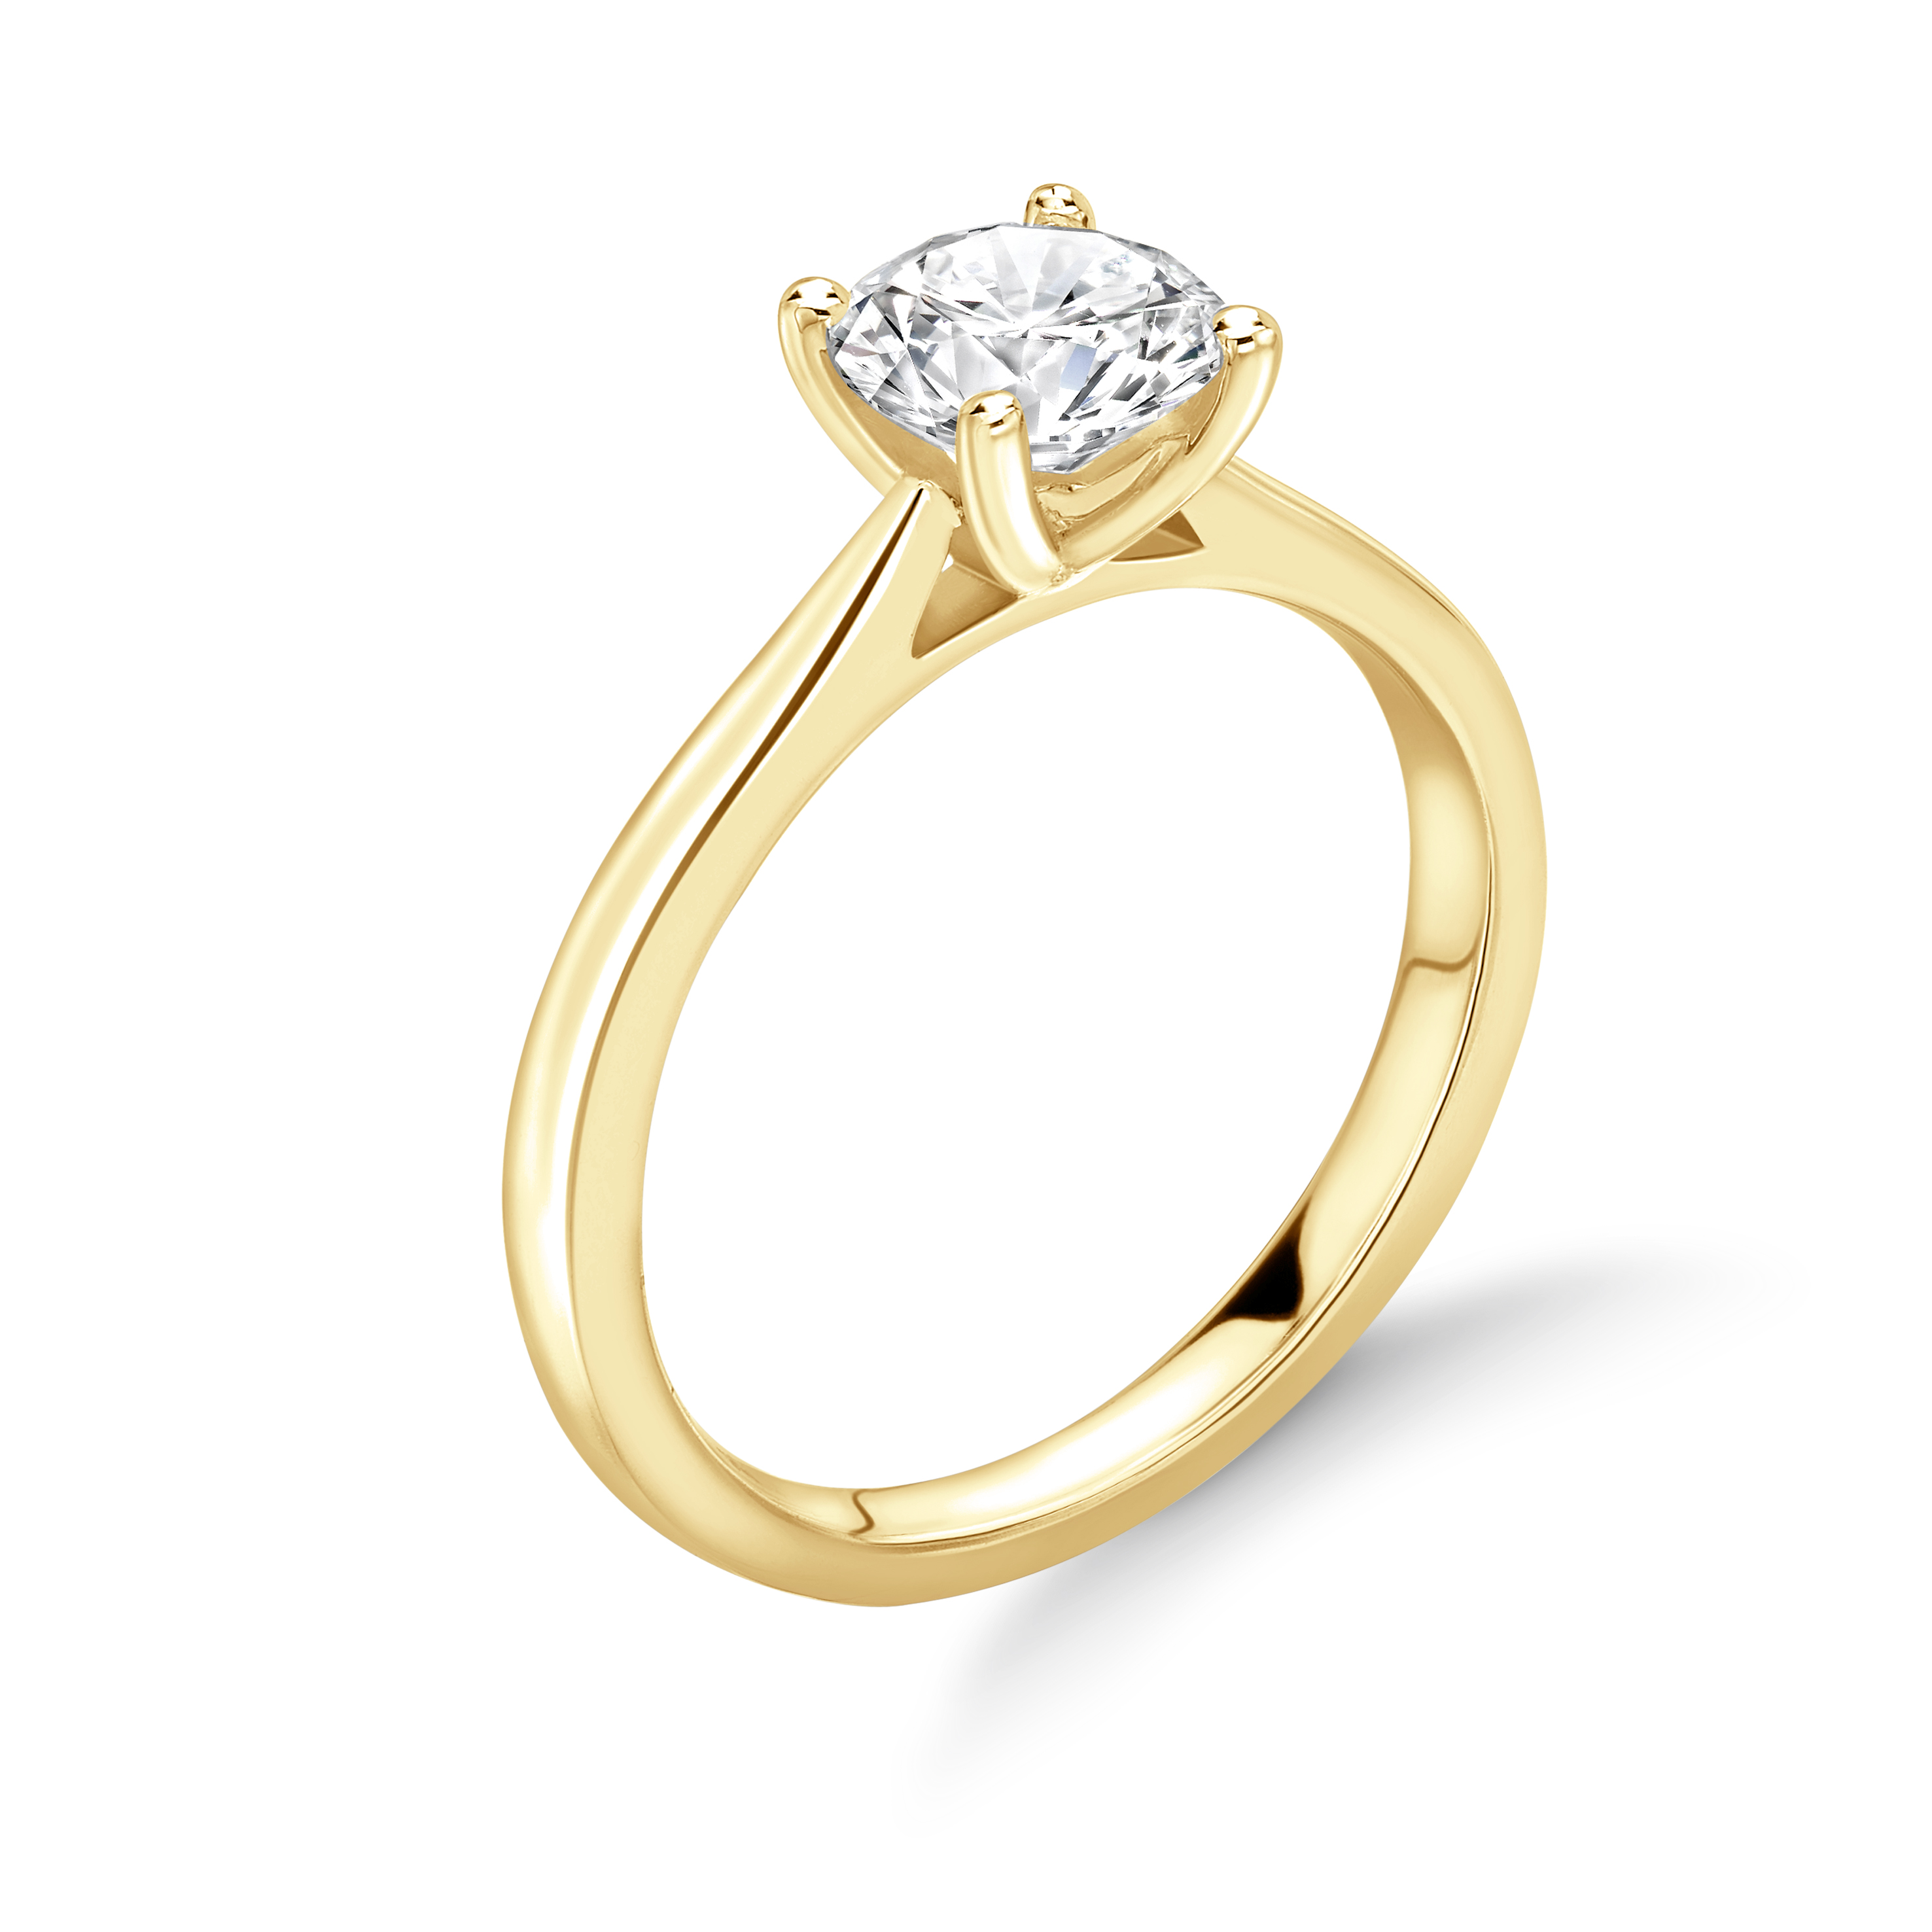 Classic Open Claw Setring Solitaire Diamond Engagement Ring